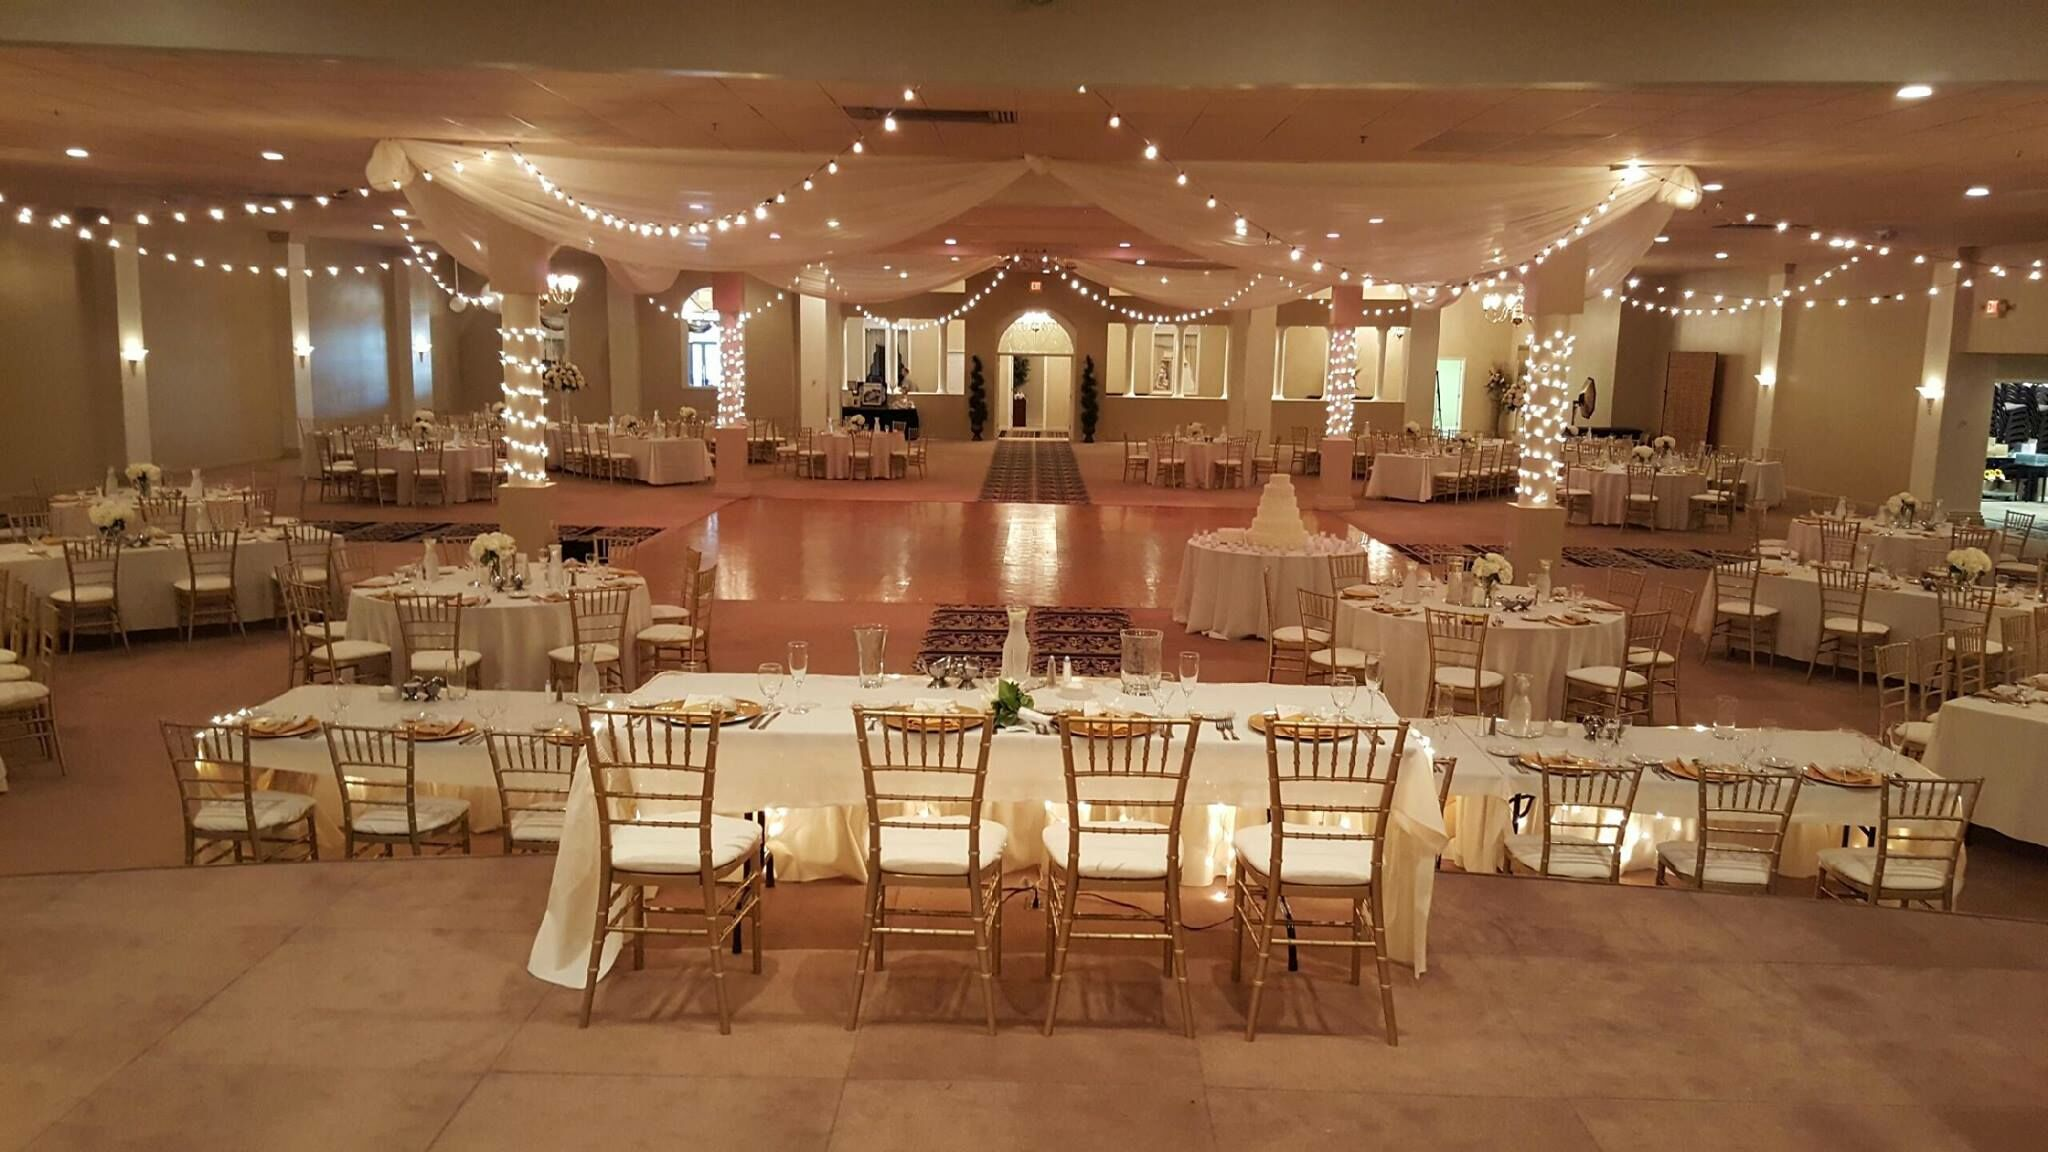 Wedding Venues in Perrysburg, OH - The Knot